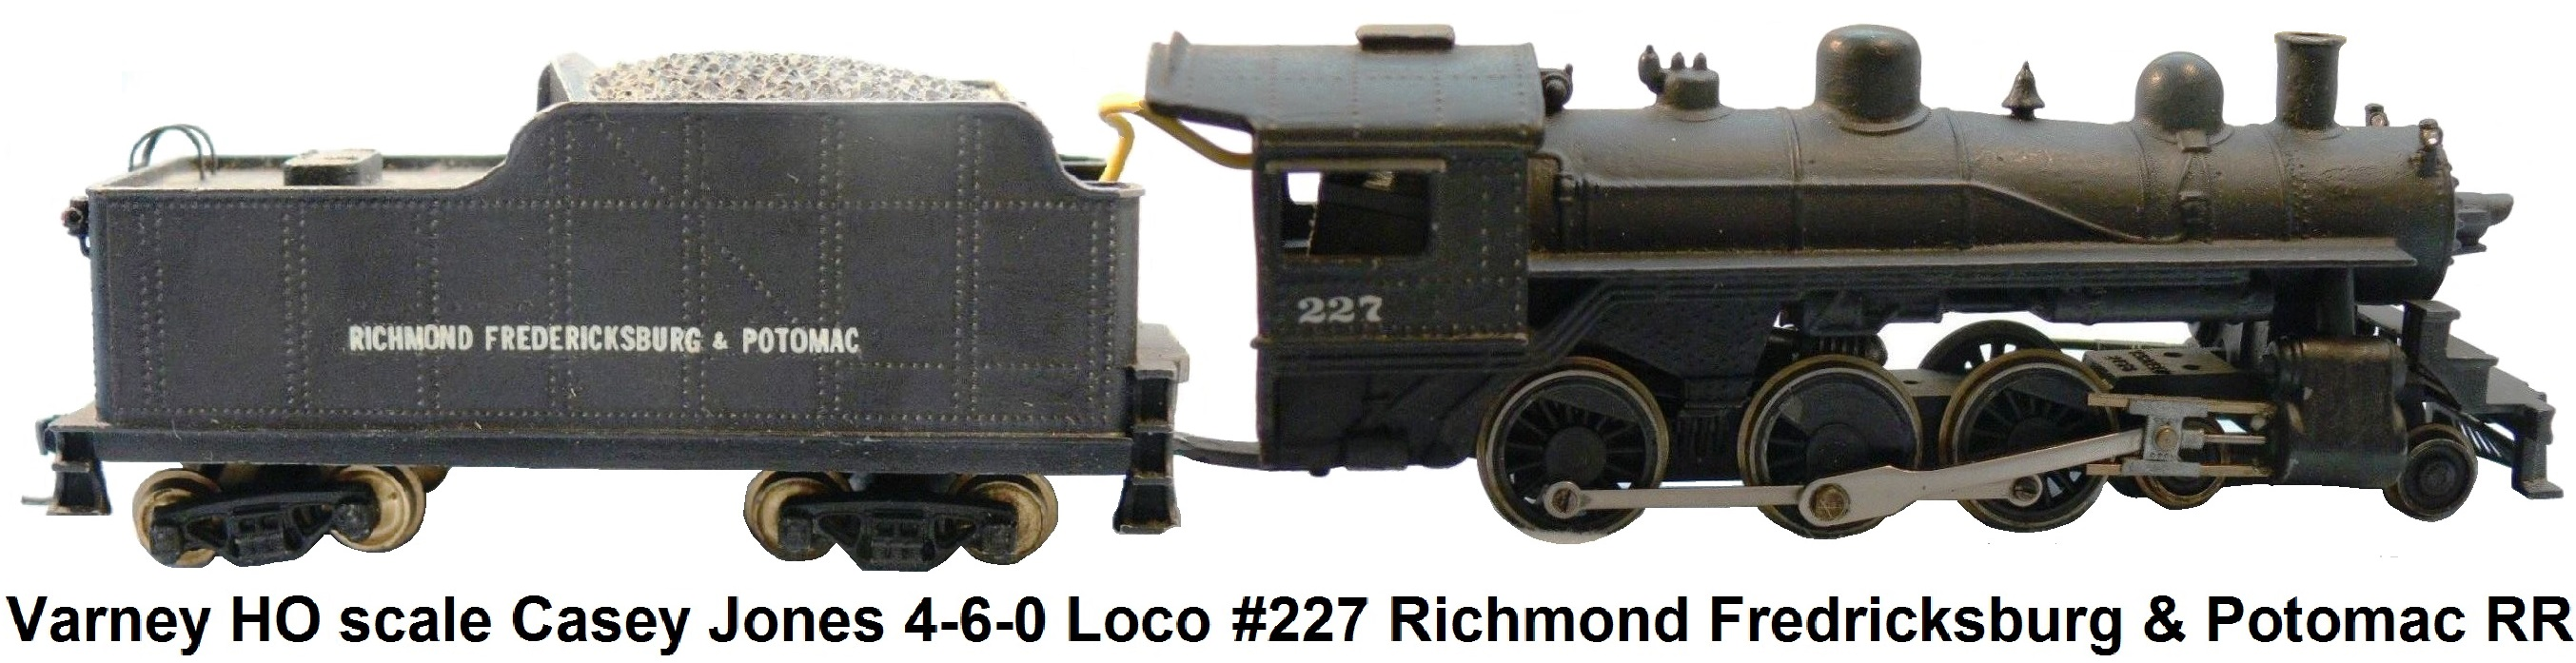 Varney HO scale 4-6-0 Casey Jones loco and tender #227 Richmond Fredricksburg & Potomac RR